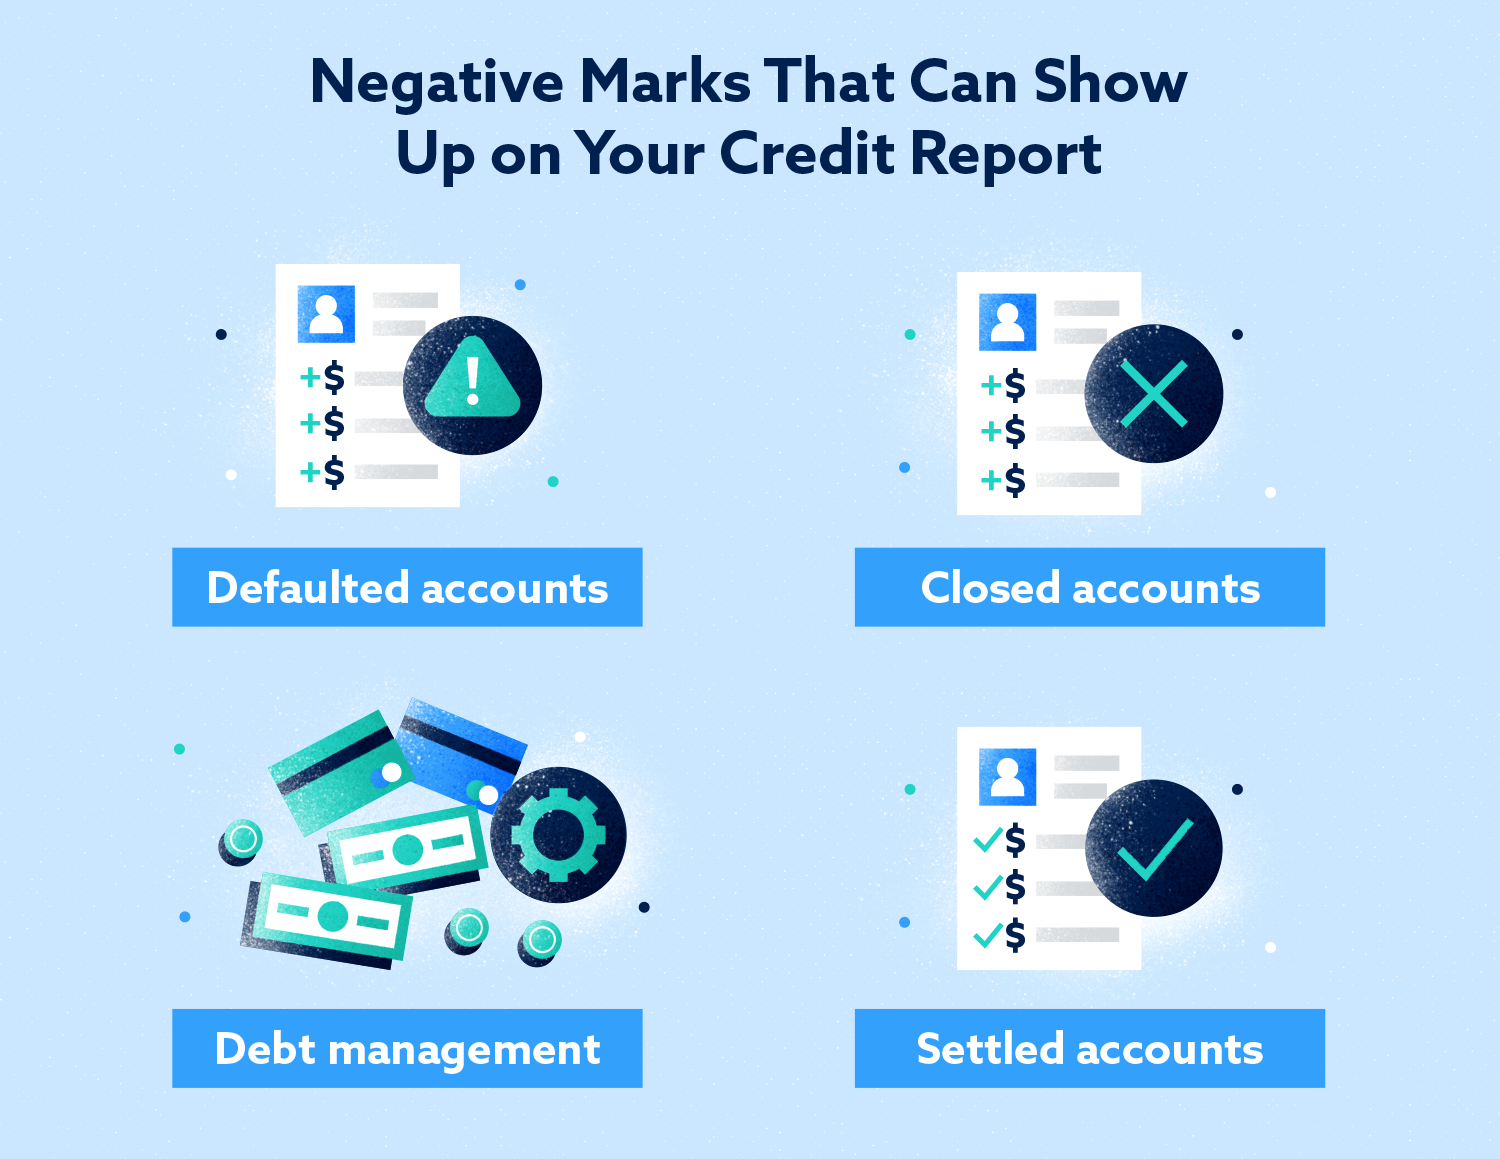 Negative Marks That Can Show Up on Your Credit Report Image